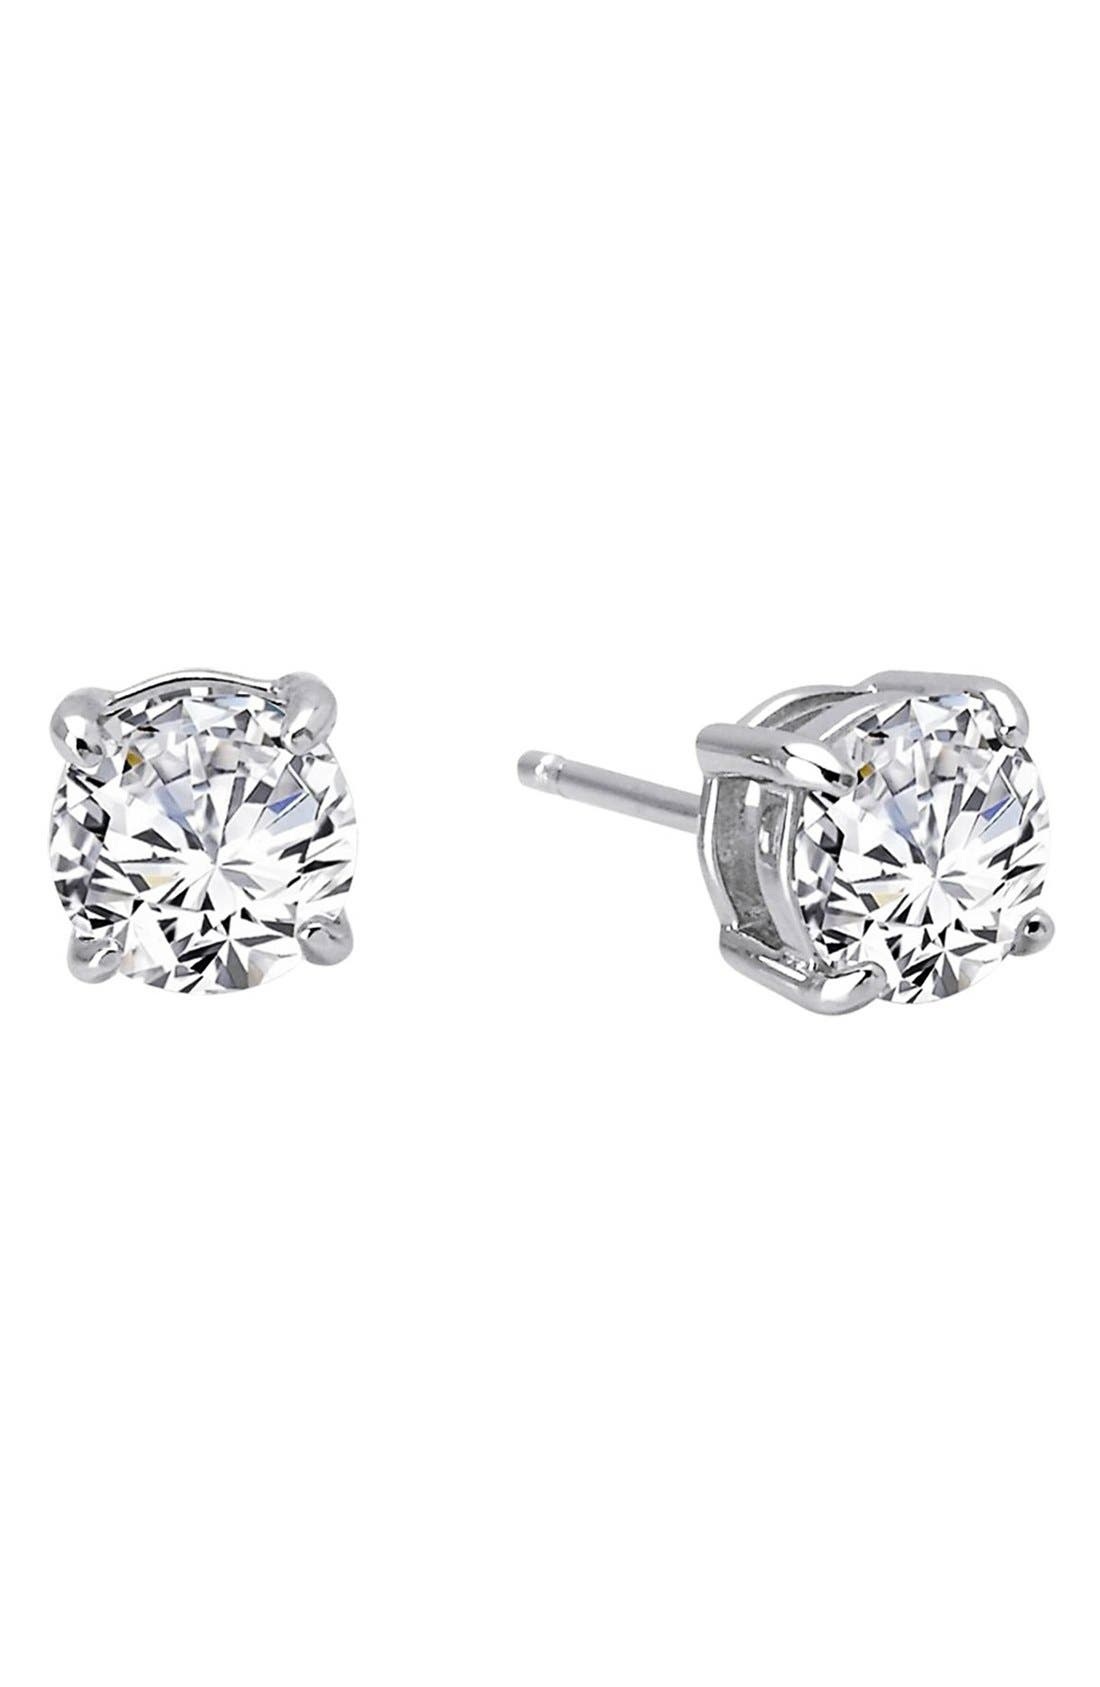 Alternate Image 1 Selected - Lafonn 'Lassaire' Four Prong Stud Earrings